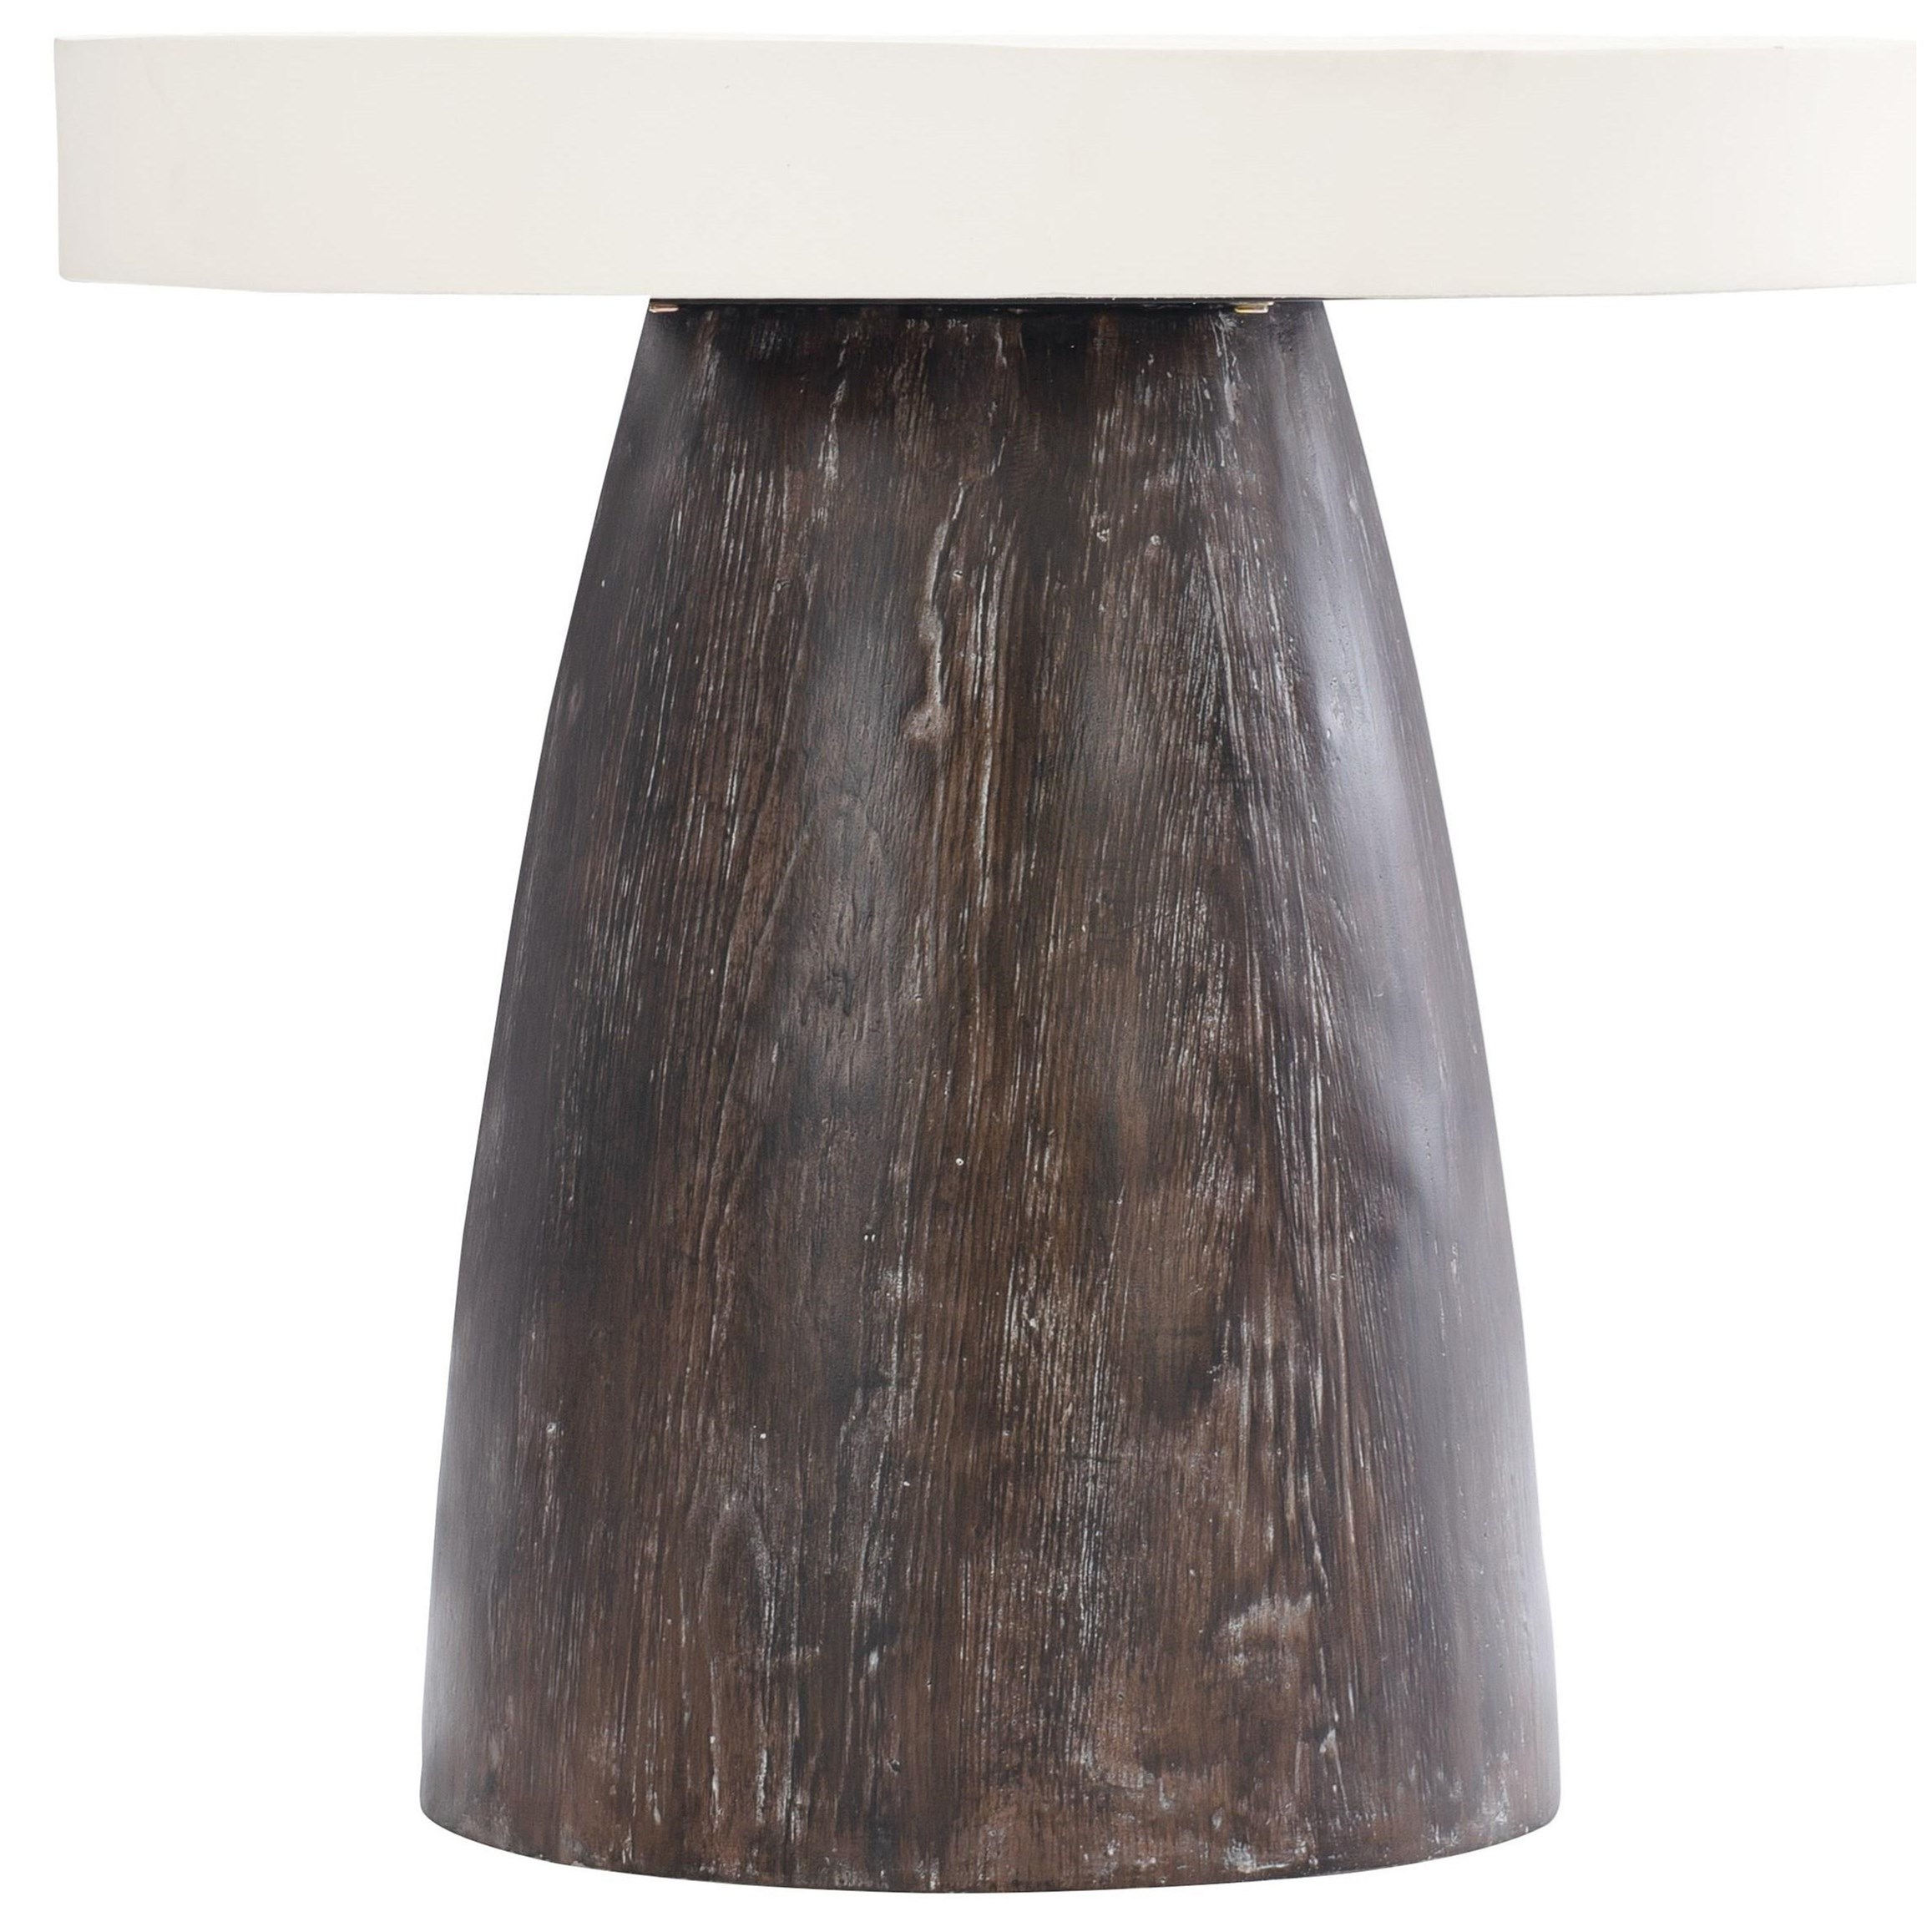 Loft - Logan Square Arlo Round End Table by Bernhardt at Baer's Furniture